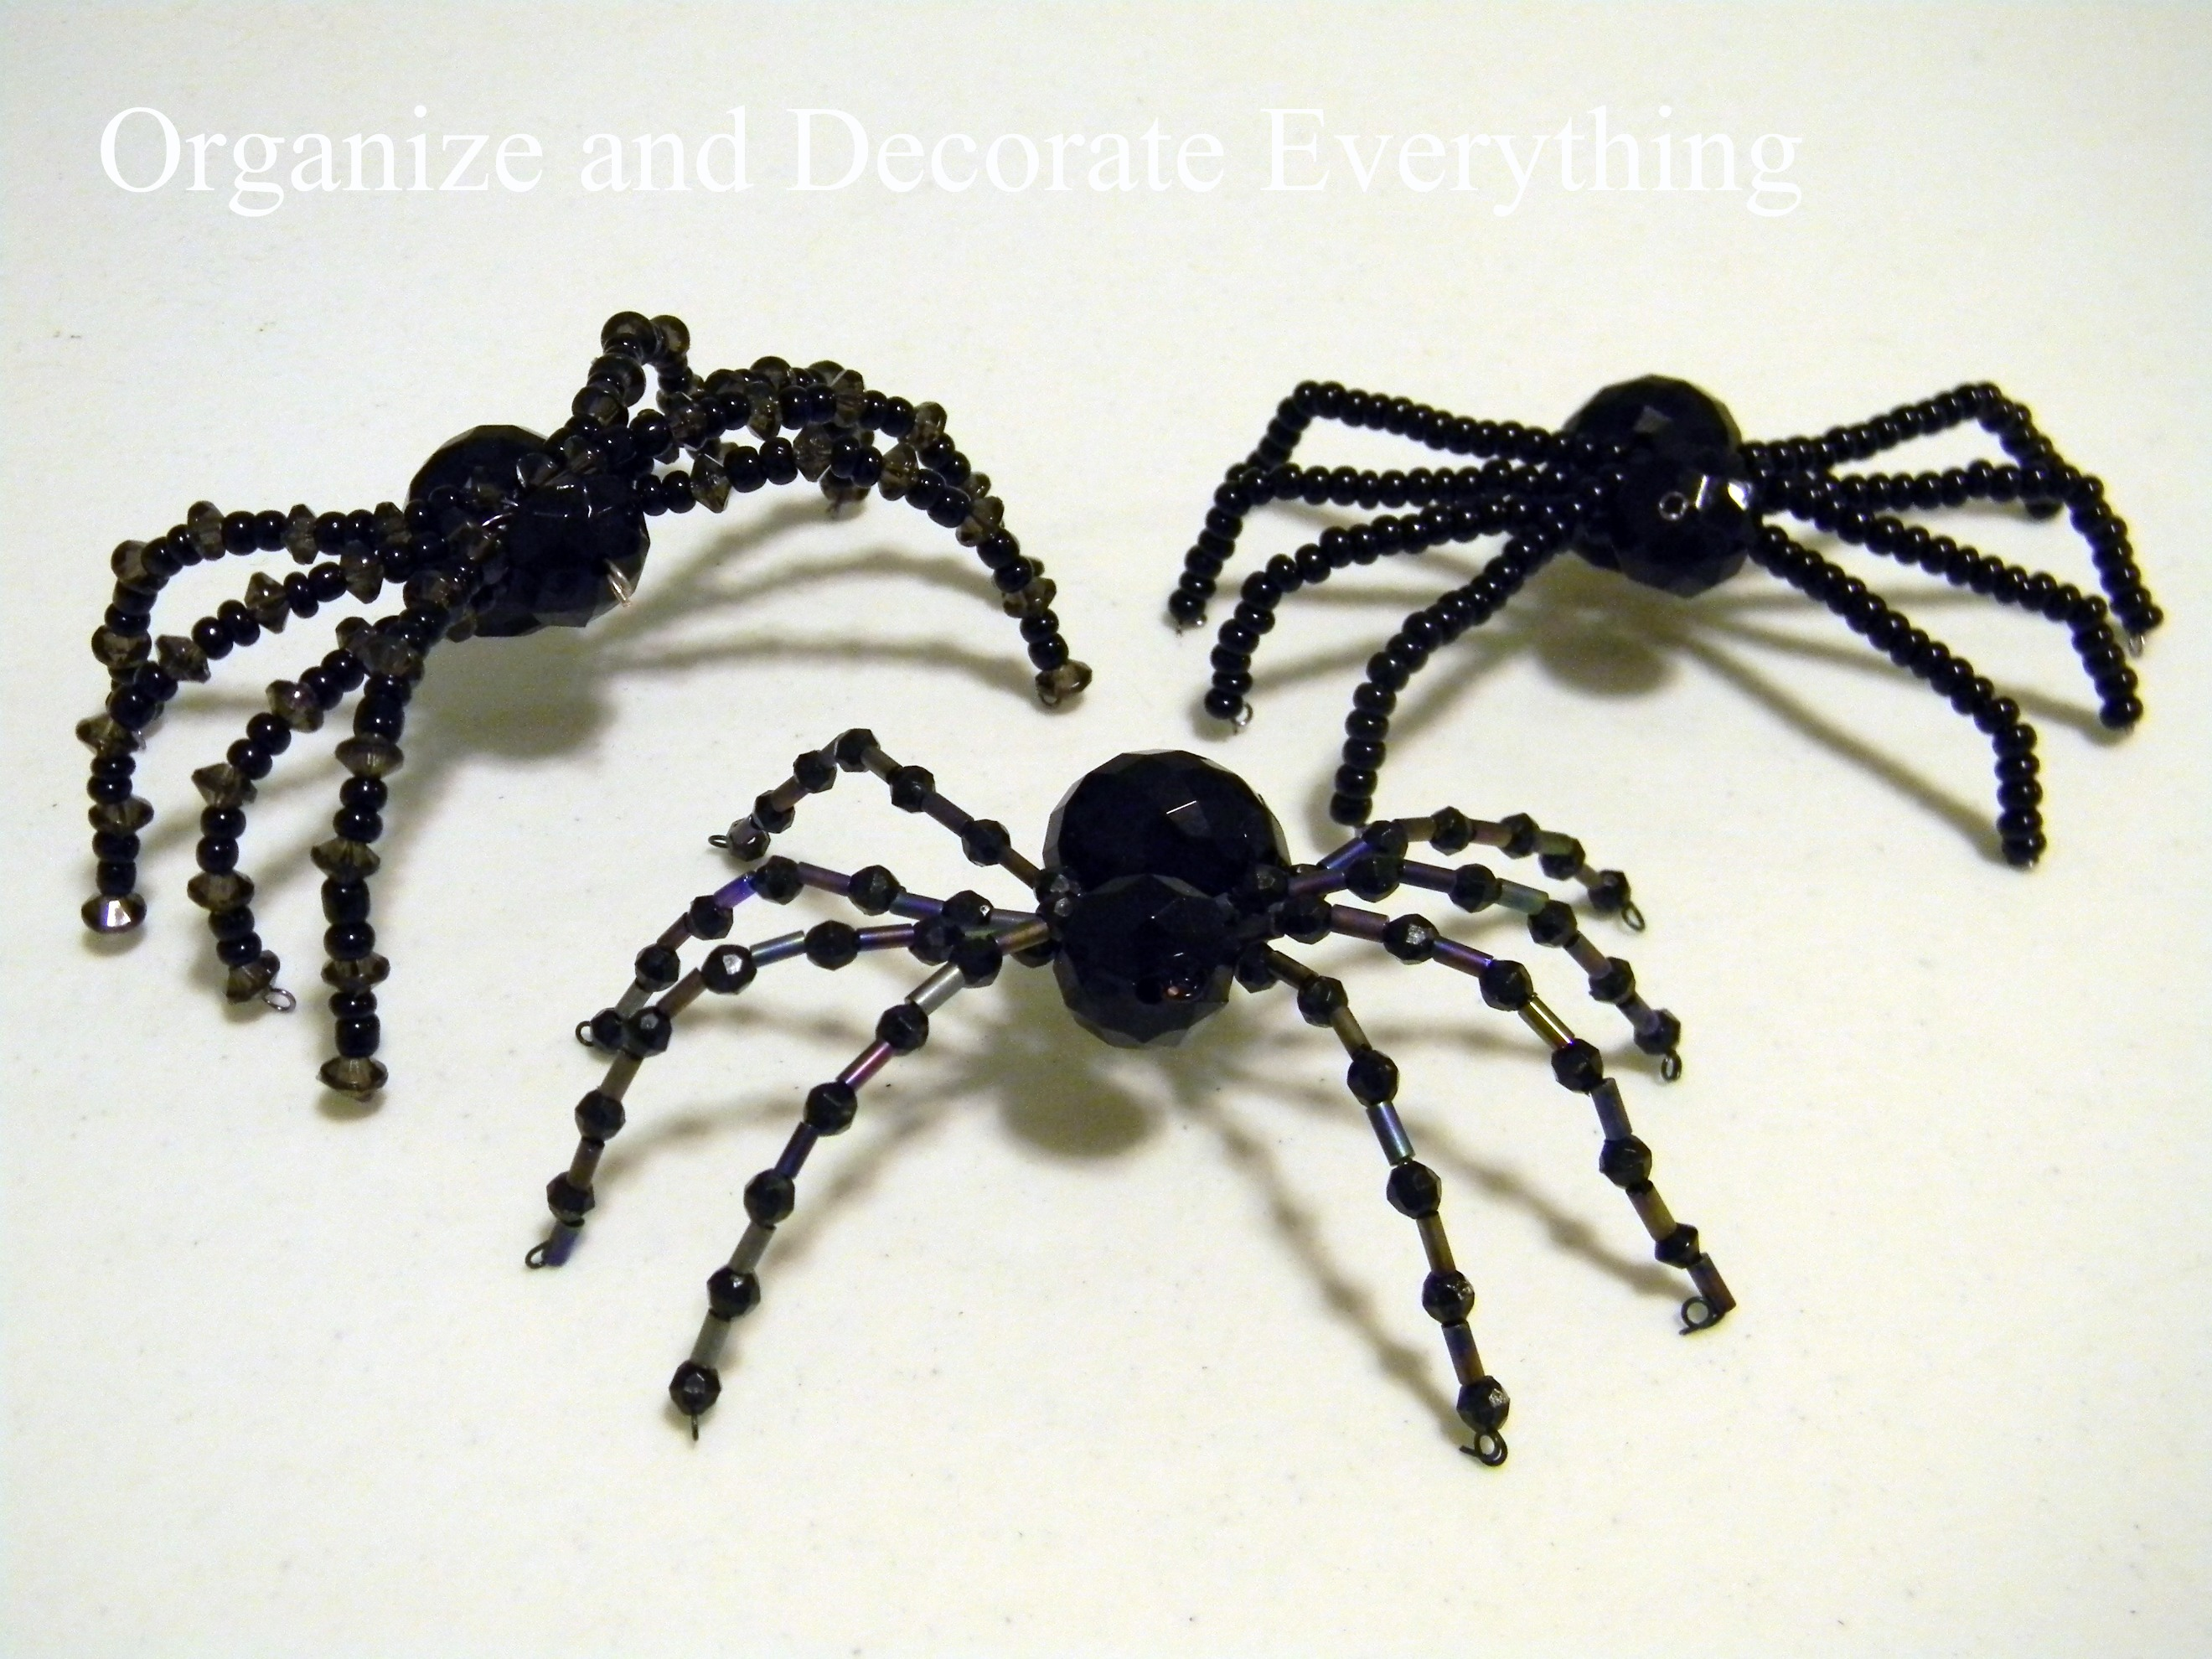 beaded spiders organize and decorate everything